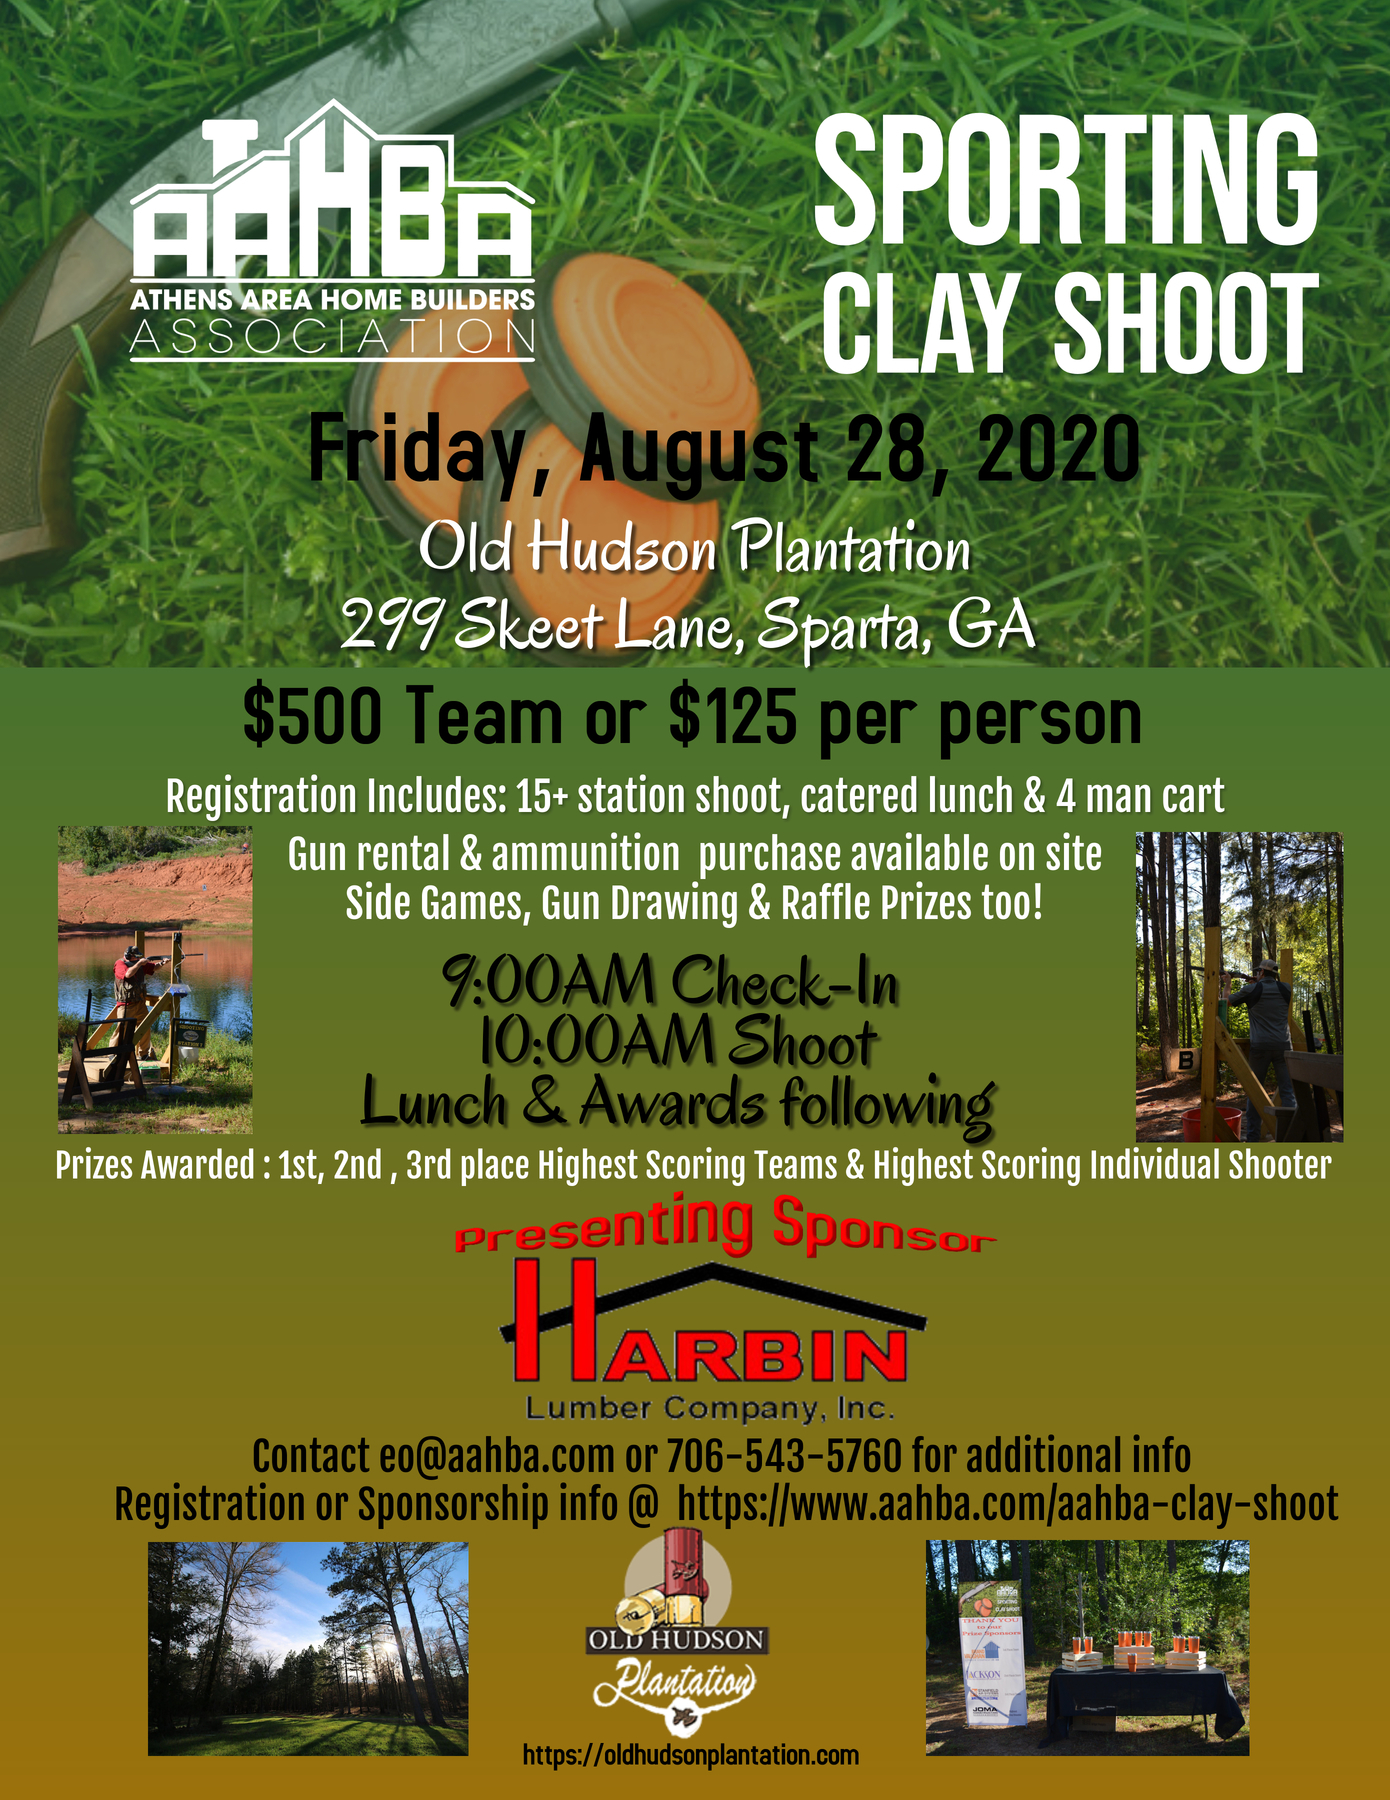 AAHBA Sporting Clay Shoot 2020 (2)